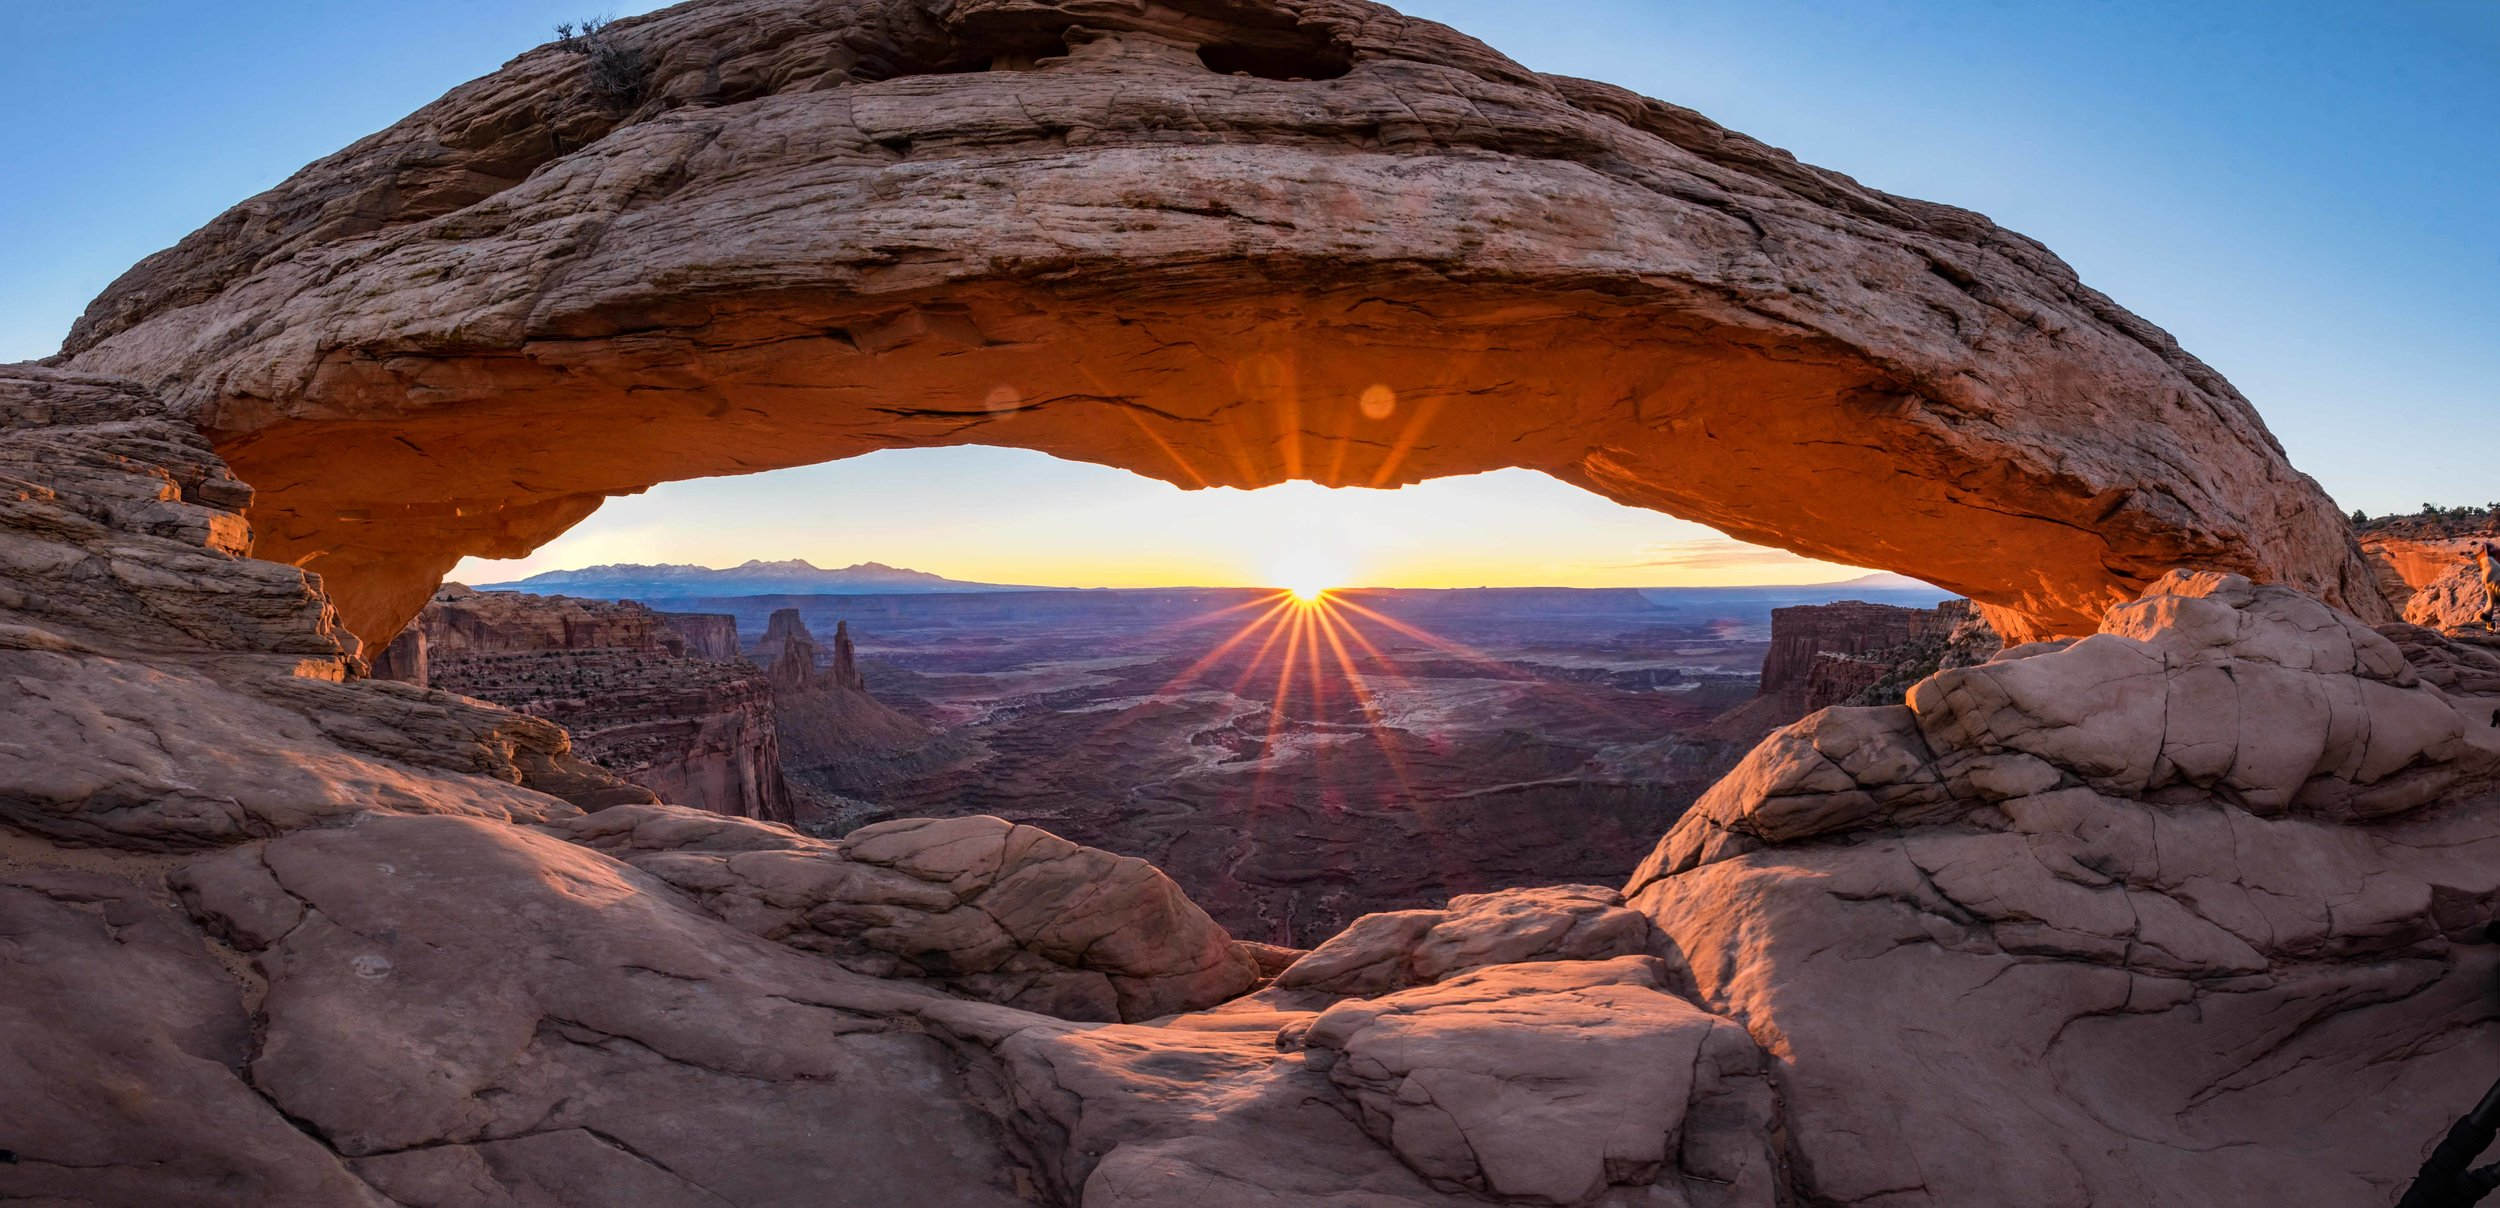 Mesa Arch is one of the great sunrise spots in all of the national parks!